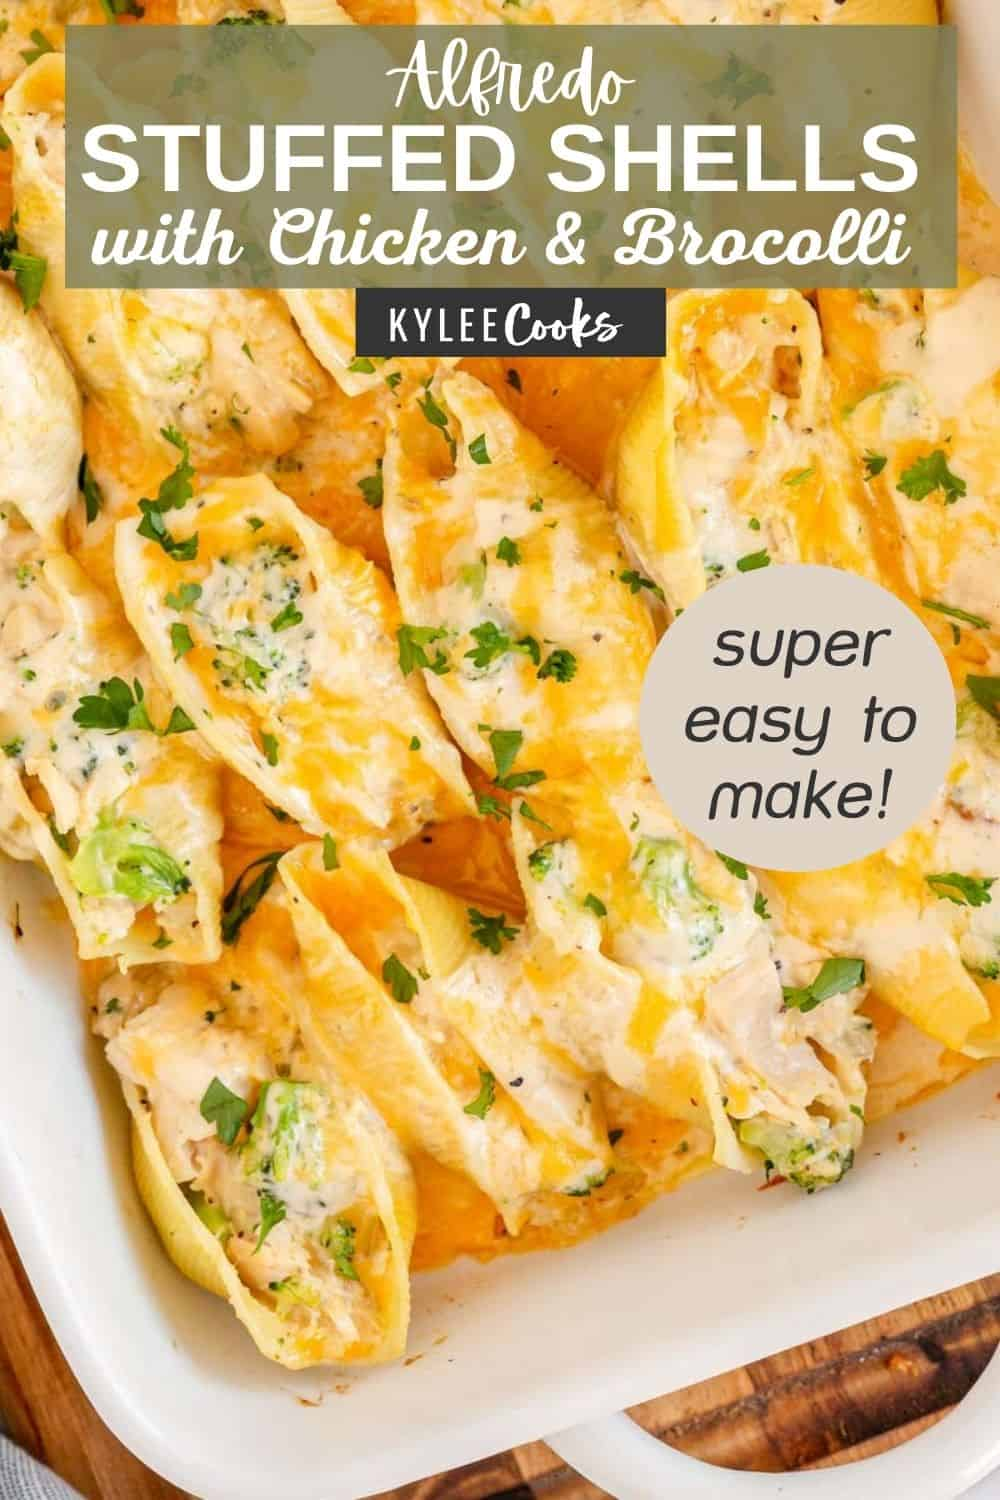 chicken alfredo stuffed shells with recipe name in a text overlay